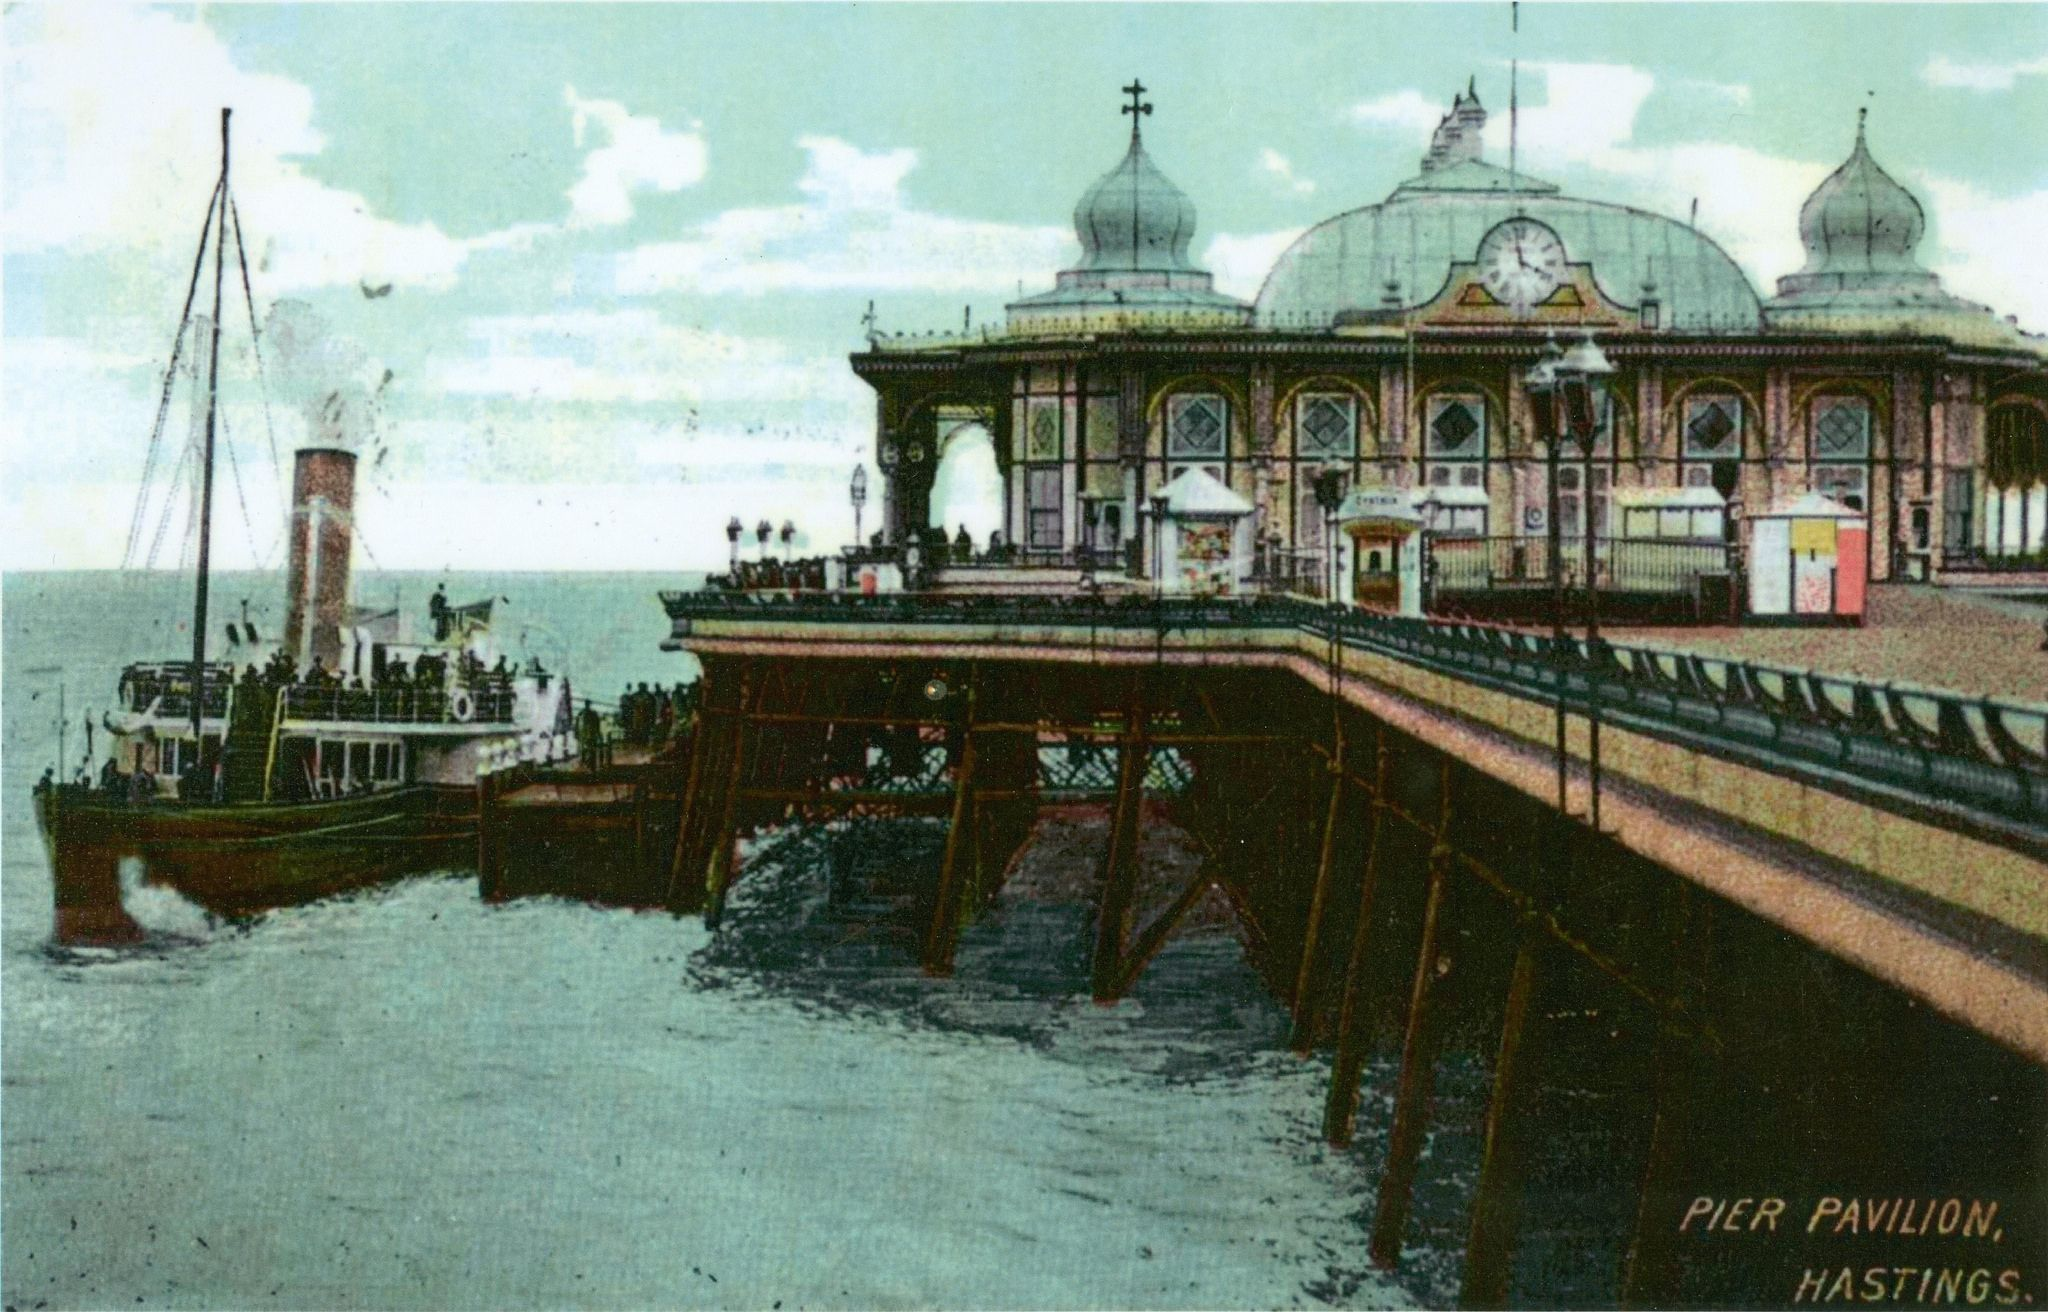 H003635 Hastings Pier Pavilion And Paddle Steamer Pre 1910 Hastings Pier Pier Luxury Sailing Yachts